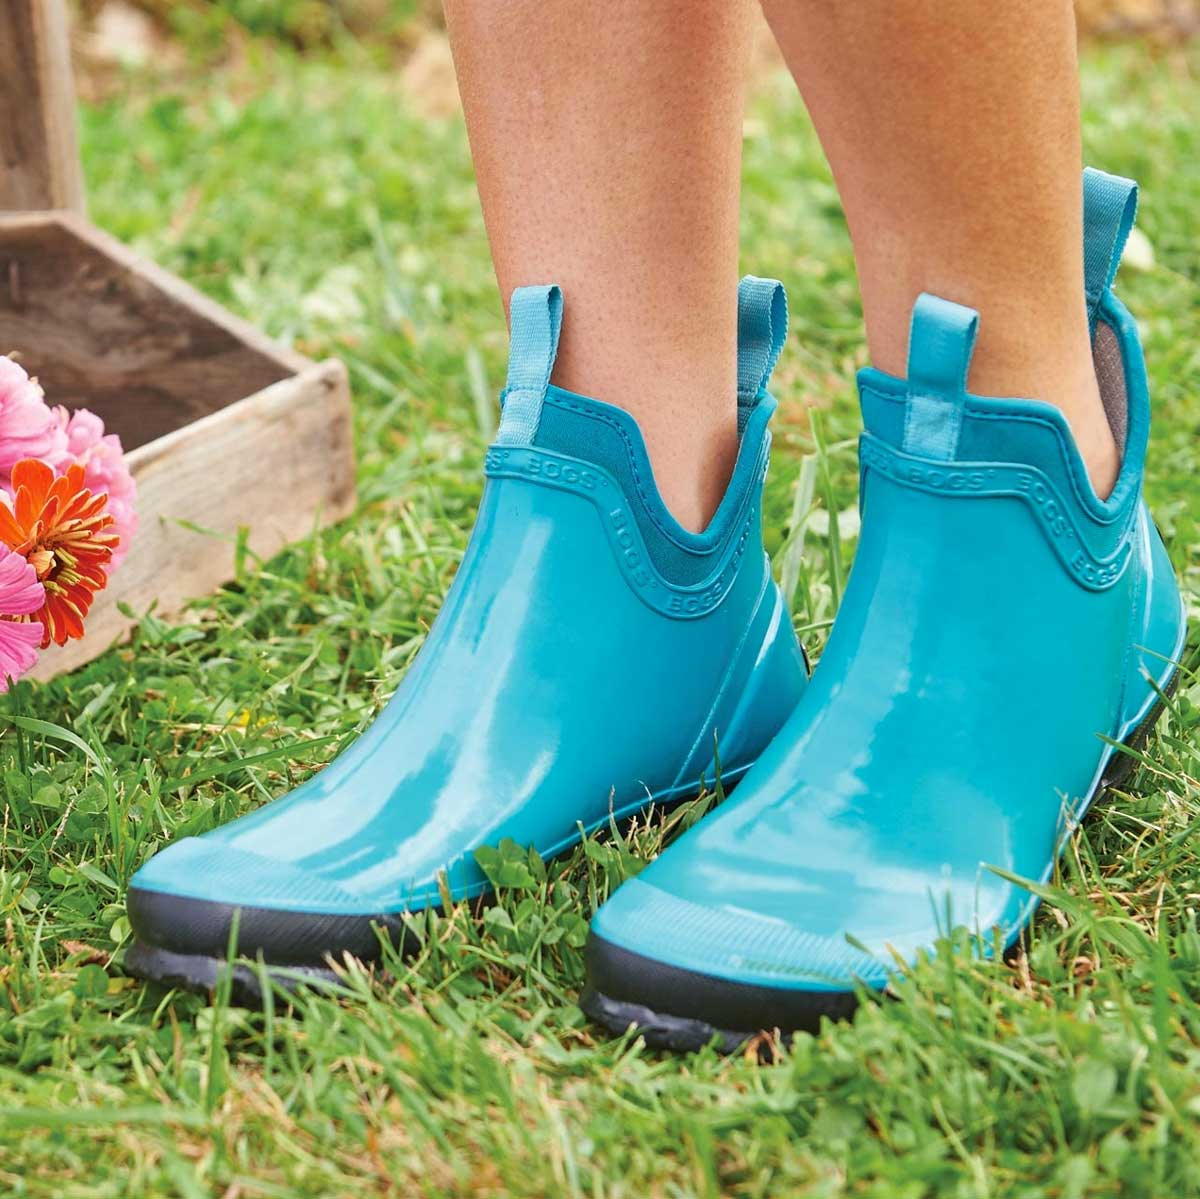 Womens Gardening Shoes